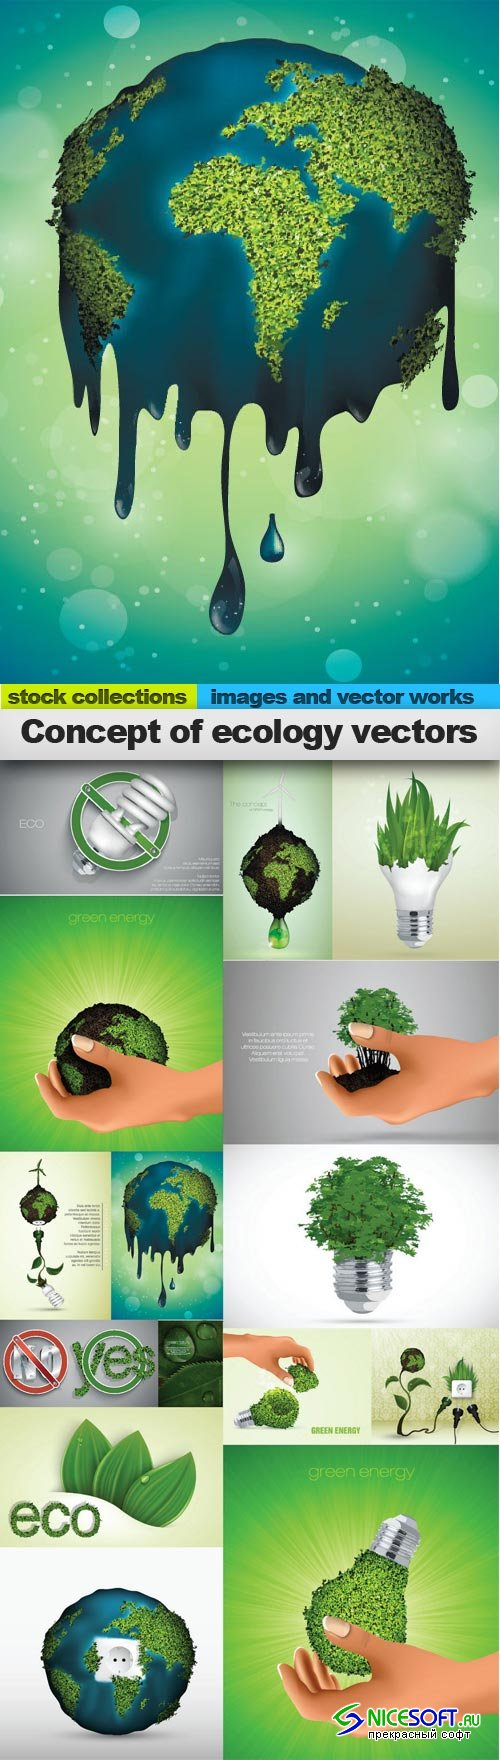 Concept of ecology vectors, 15 x EPS